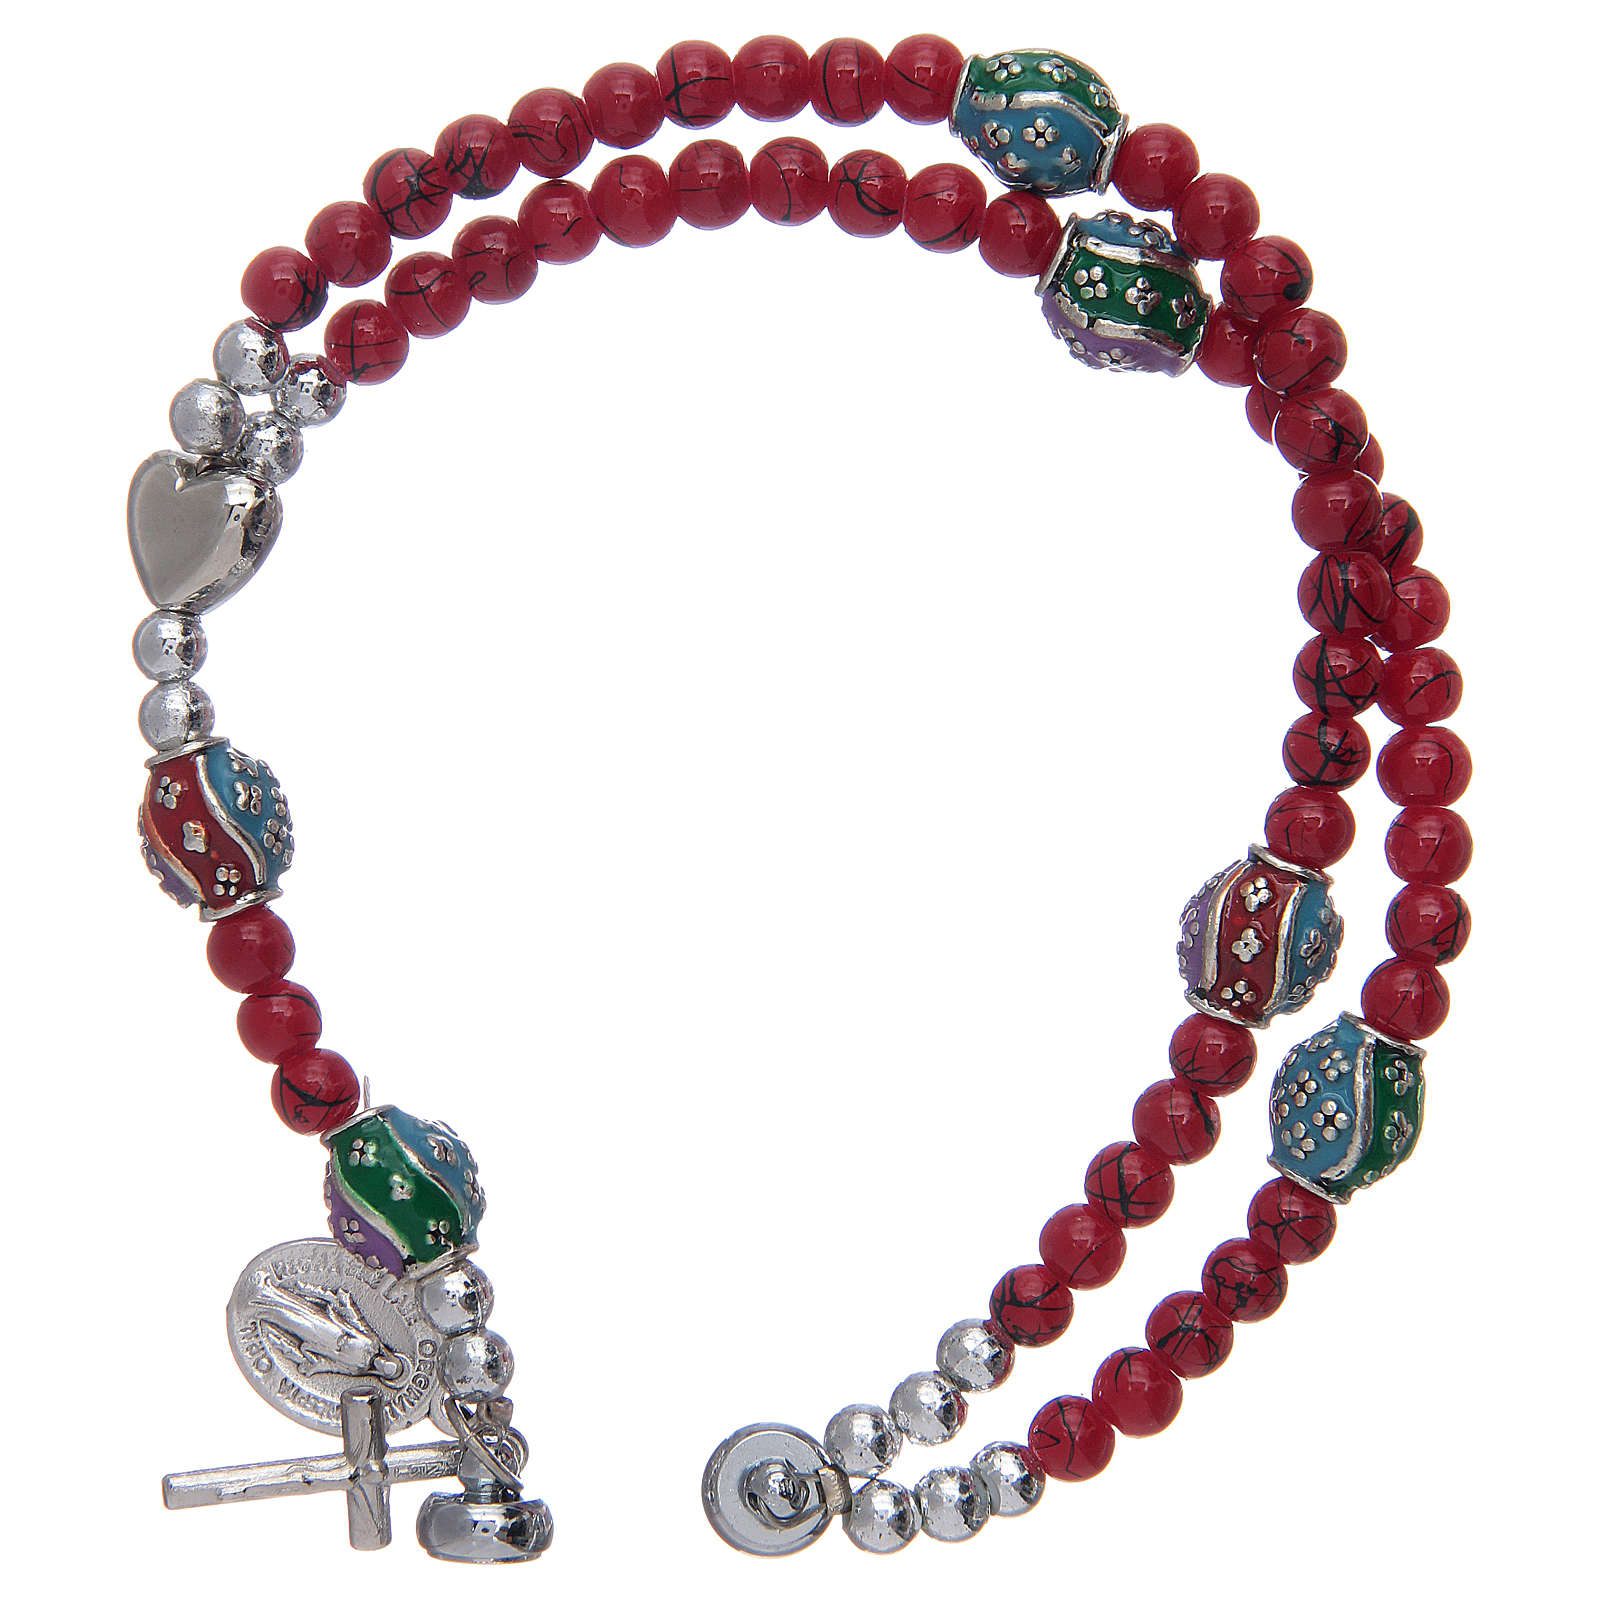 Rosary bracelet with glass grains 4 mm and red polished metal 4